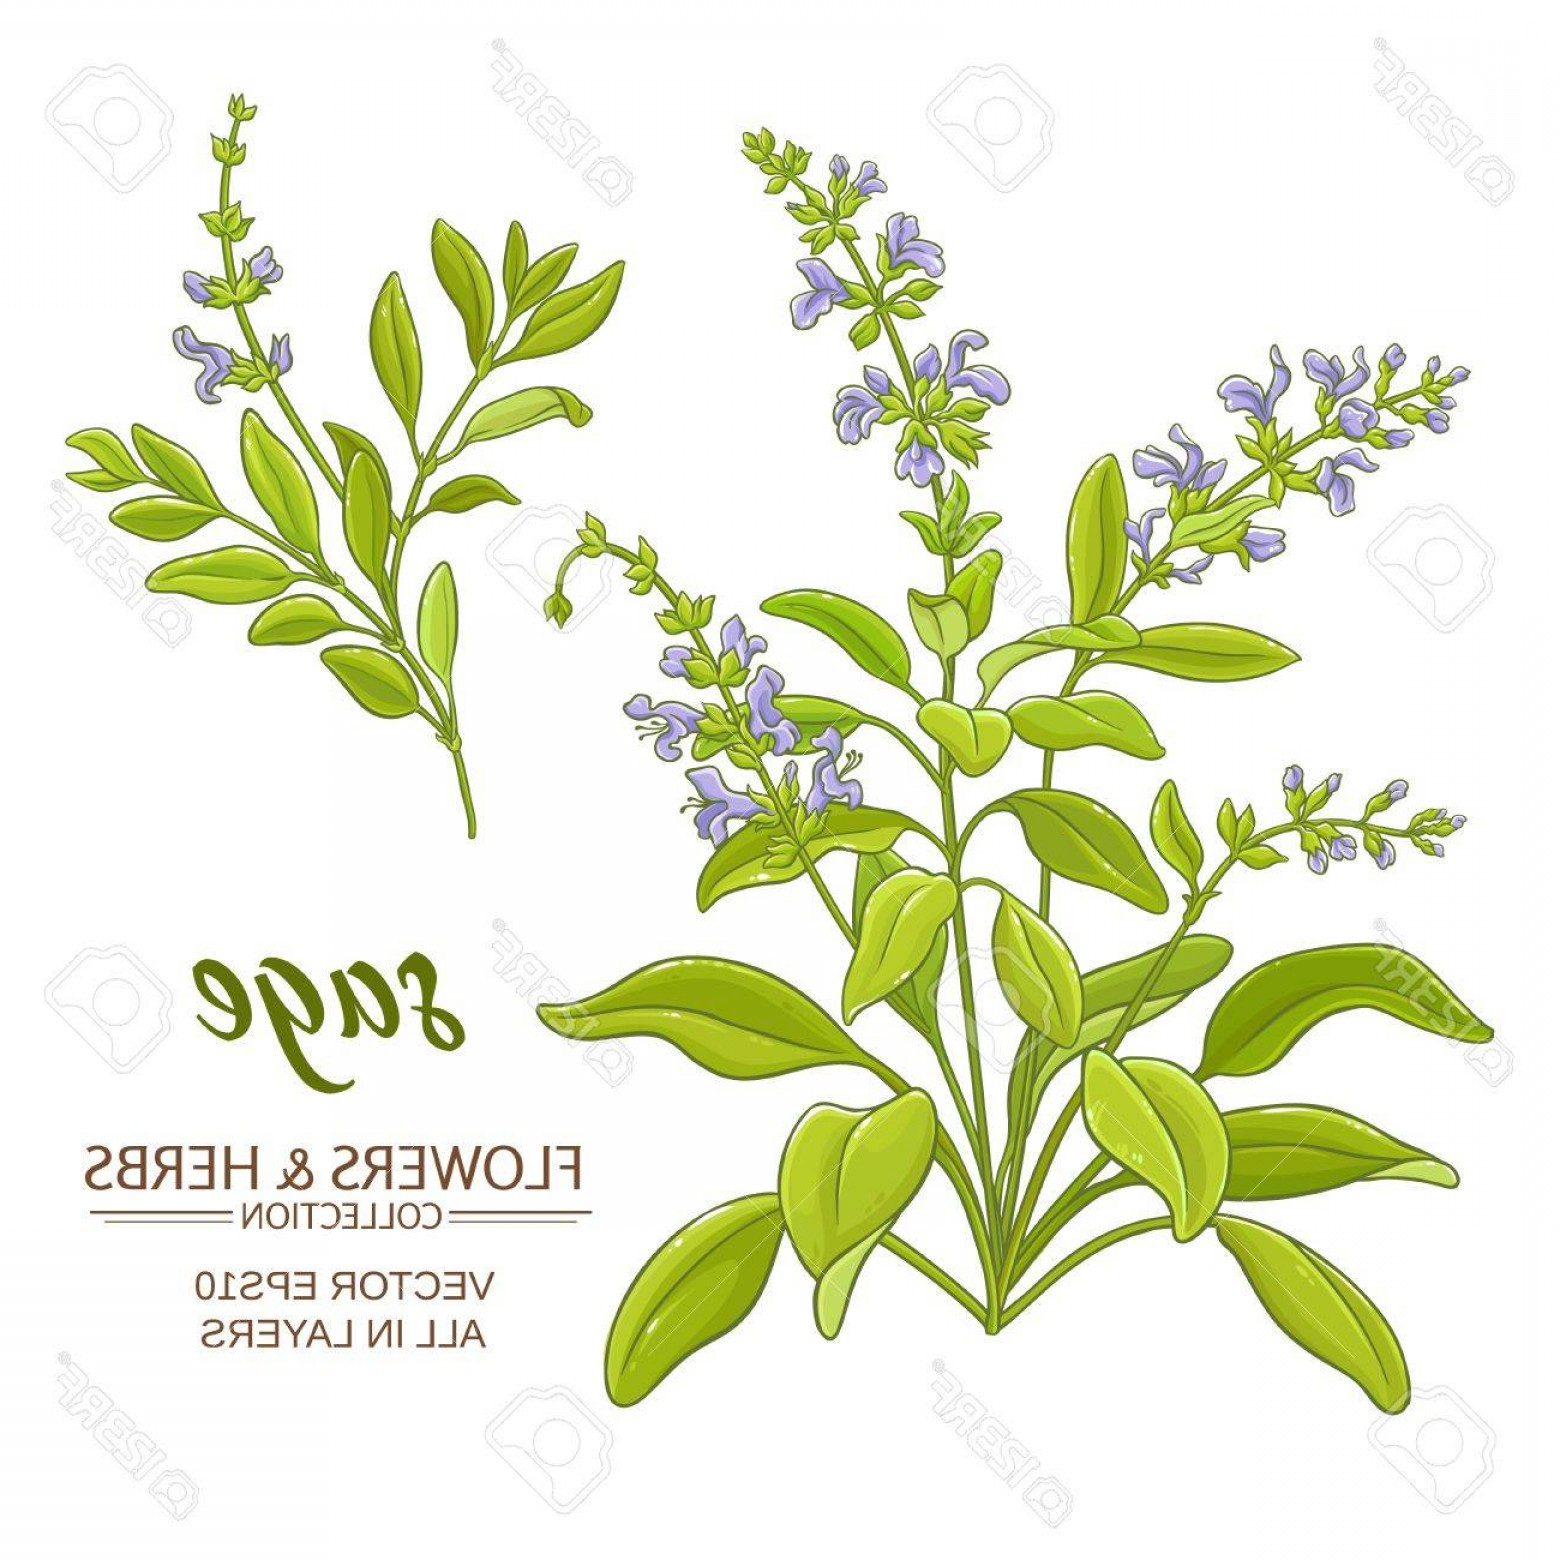 Sage Plant Vector: Photostock Vector Sage Plant Vector Illustration On White Background